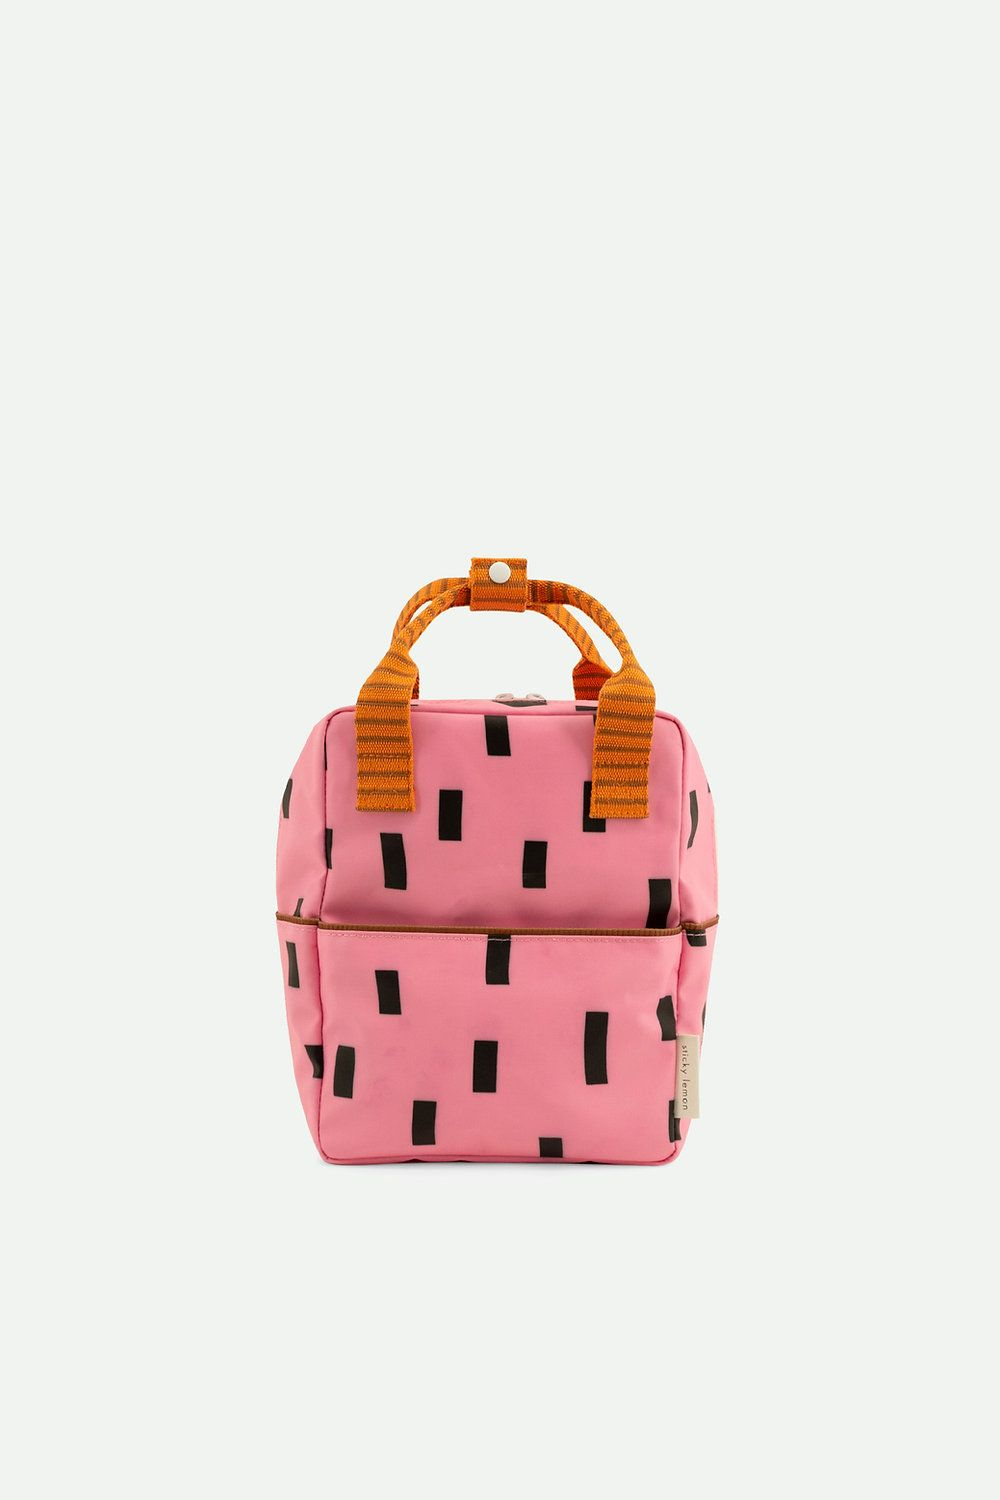 Sticky Lemon Backpack Small Sprinkles Bubbly Pink + Carrot Orange + Syrup Brown - in Schooltassen